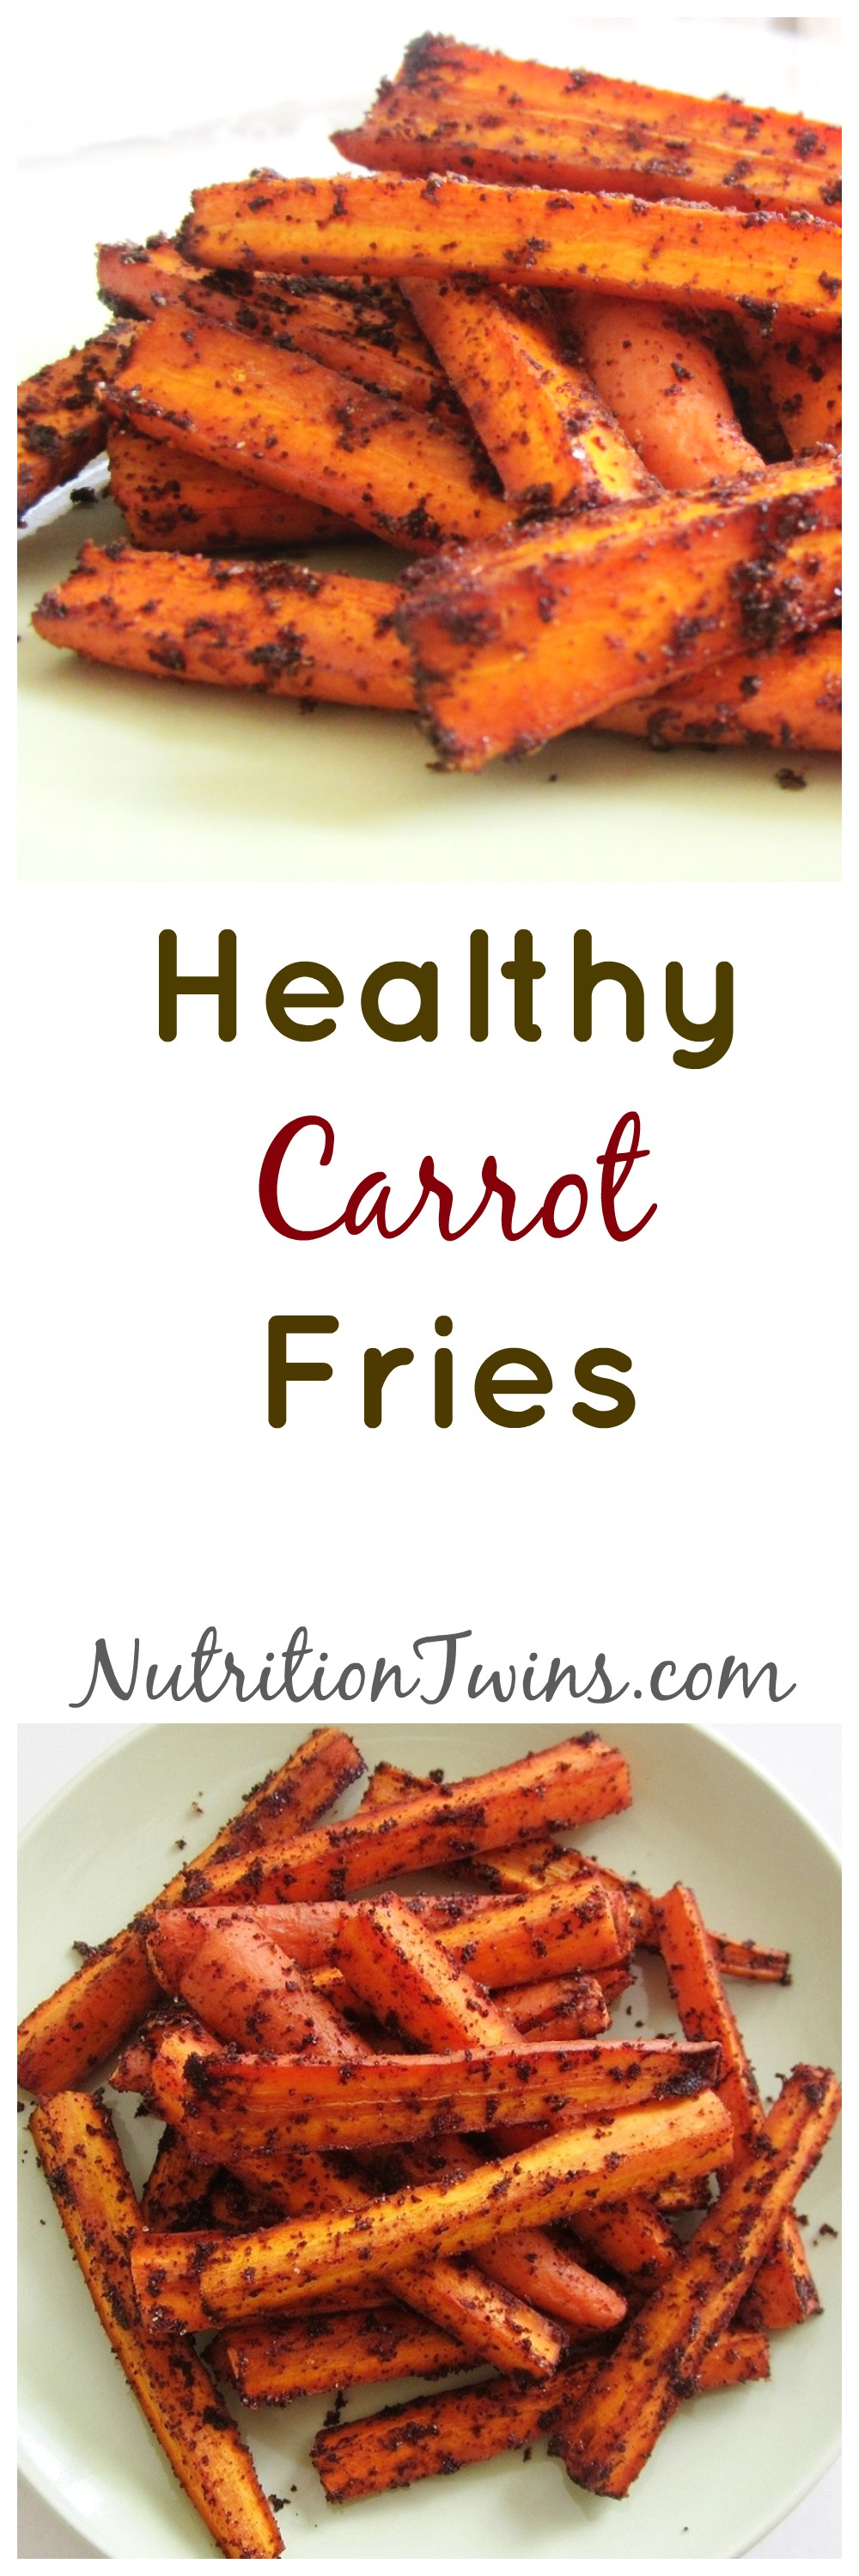 Healthy Carrot Fries Collage